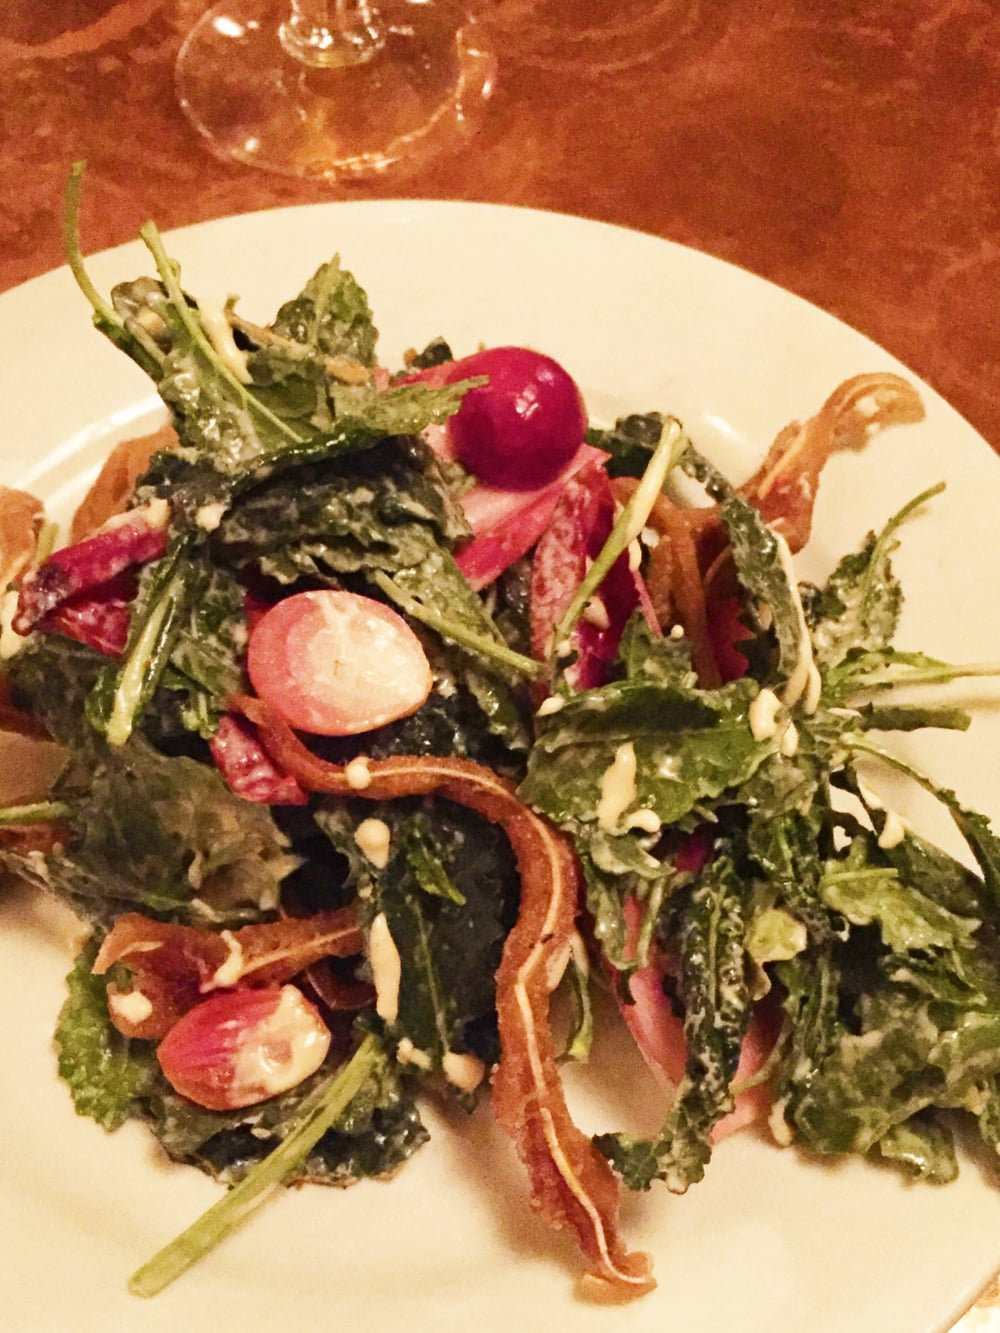 Crispy Pig's Ear Salad with Red Endive and Mustard.